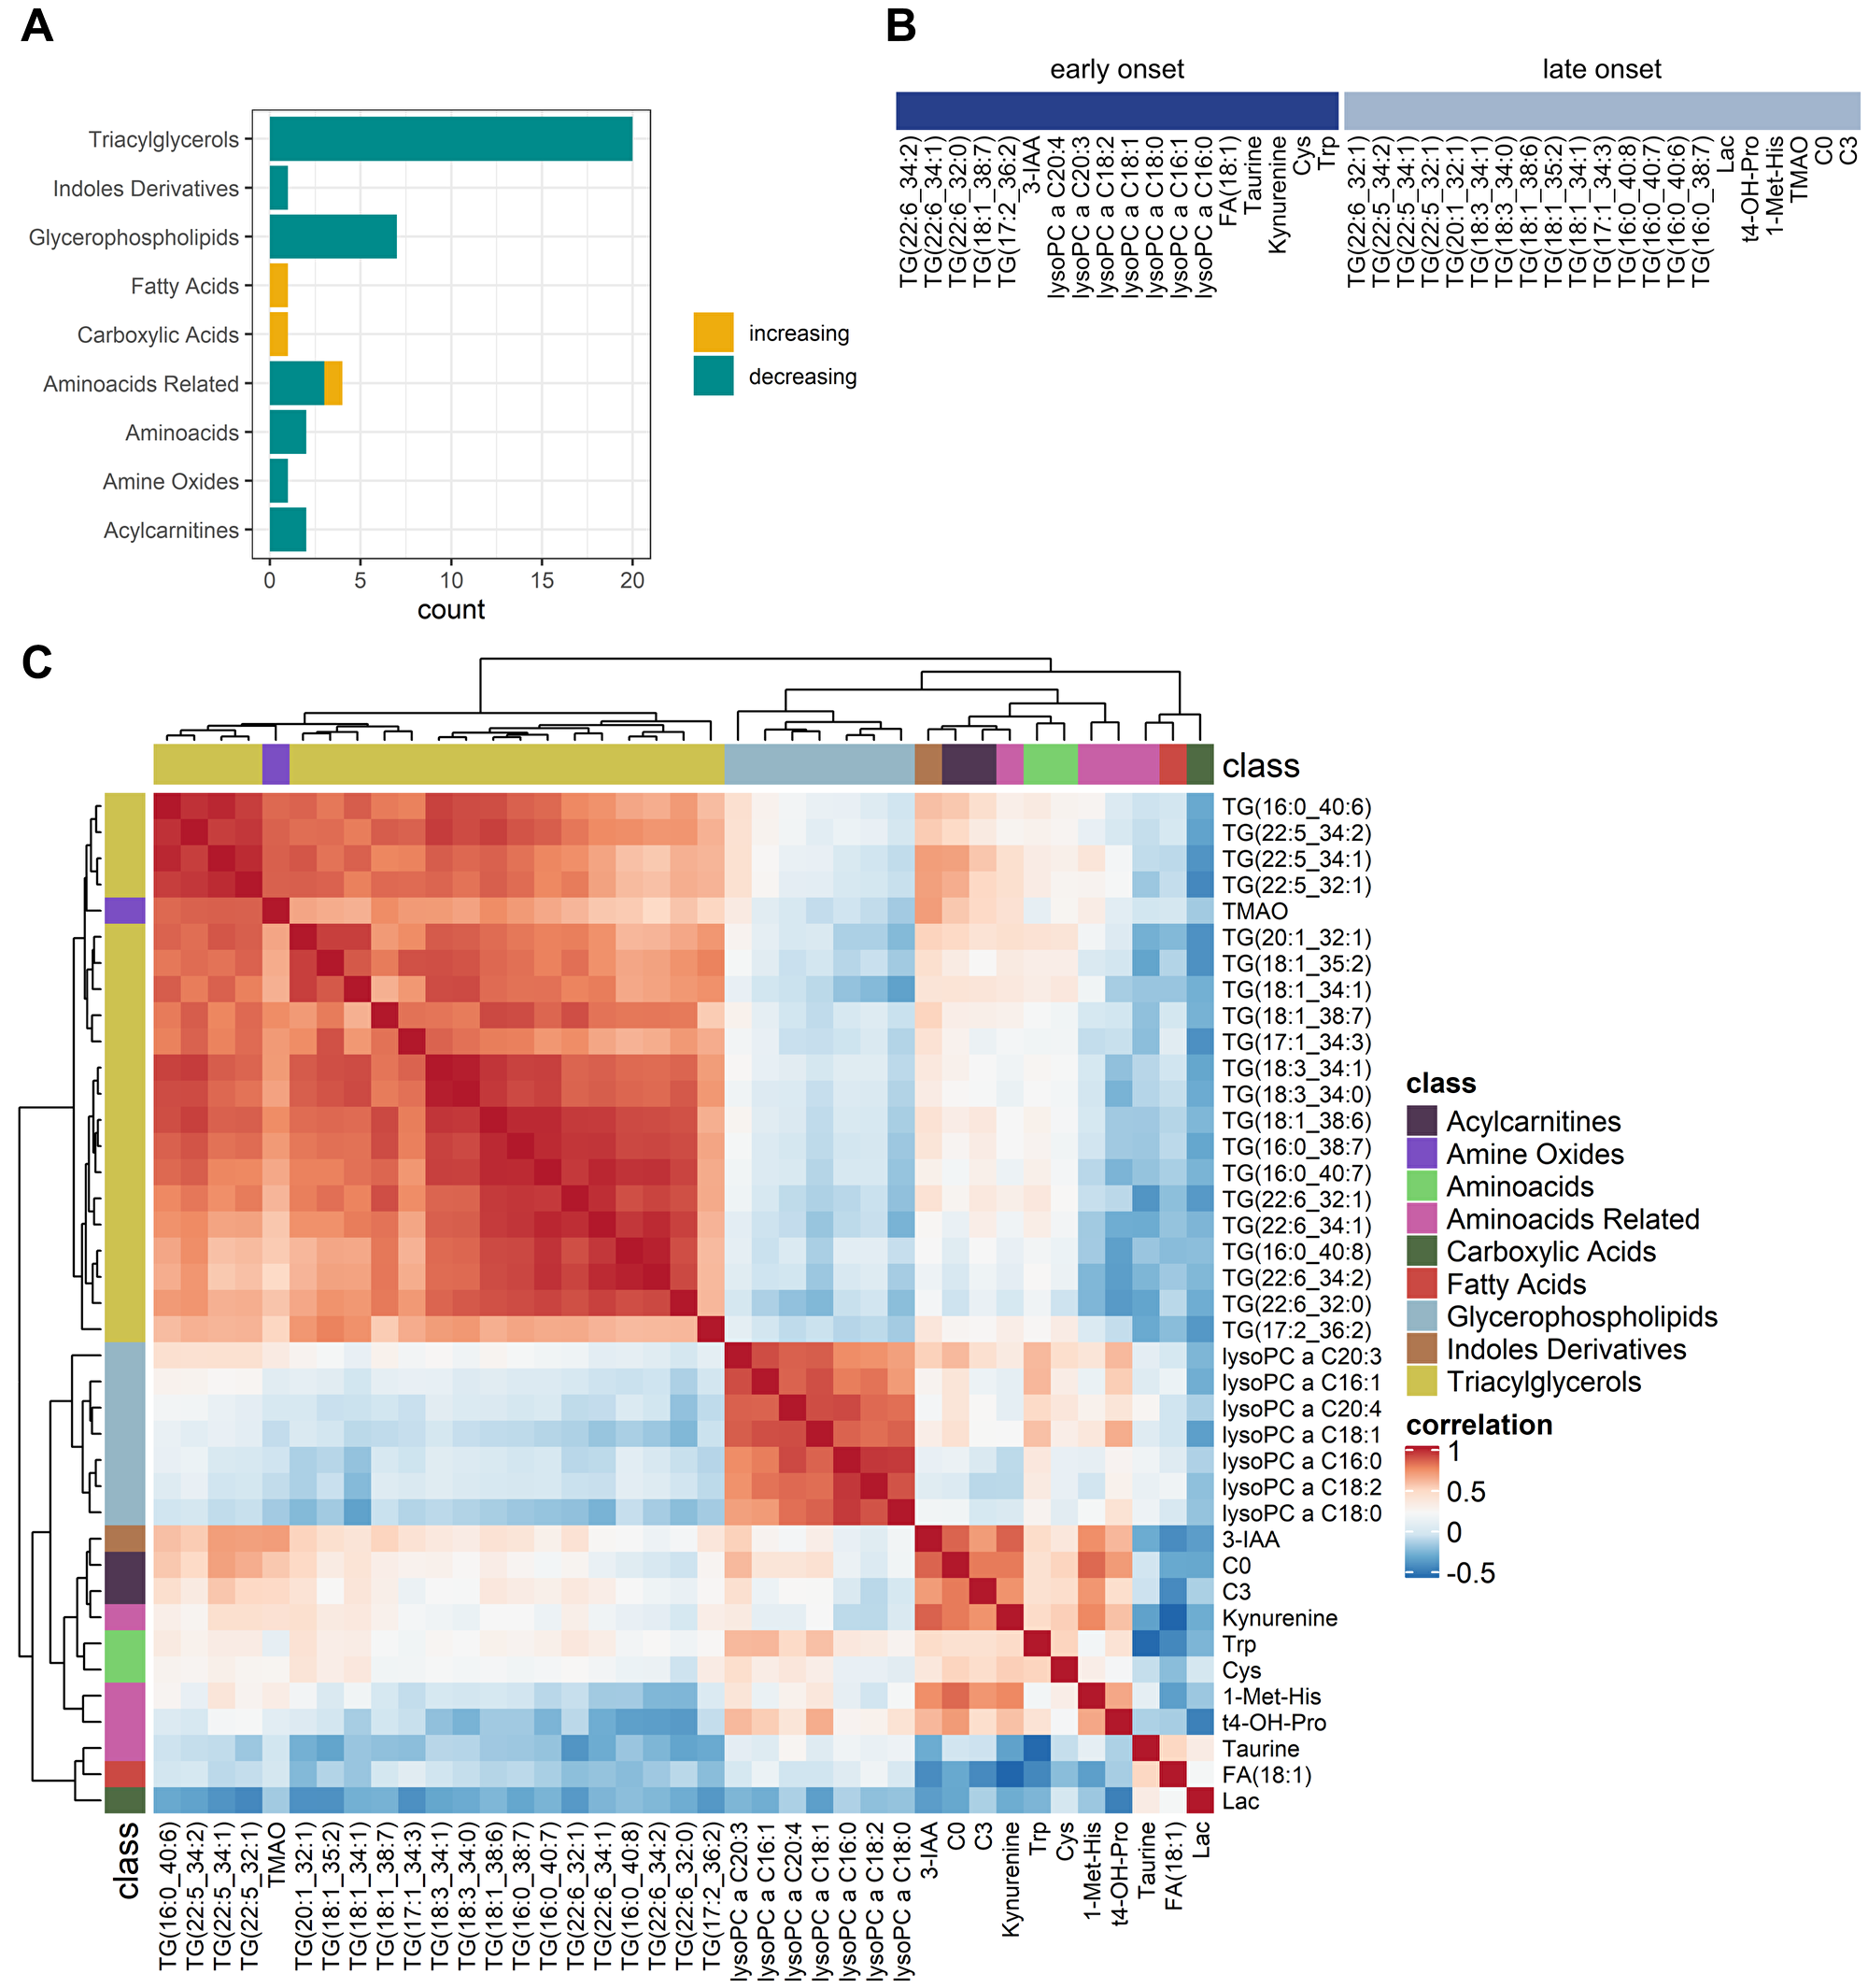 Comparative analysis of perioperative changes in the metabolome.